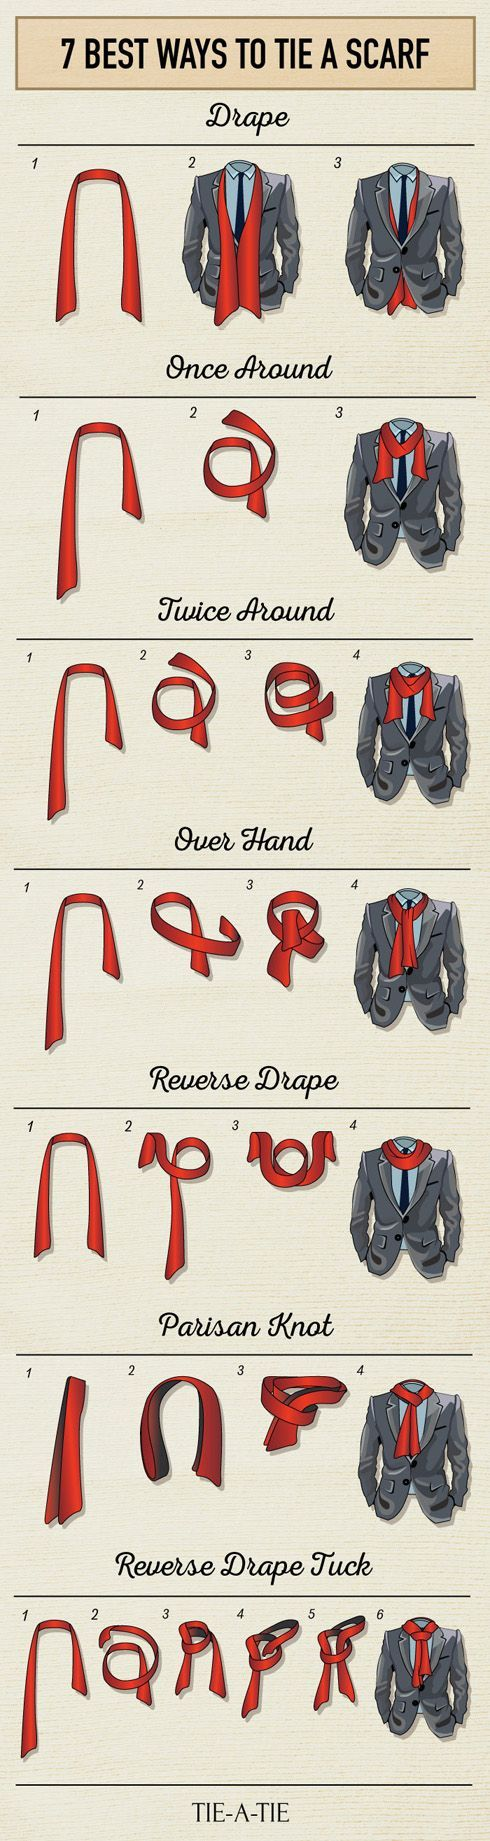 7 Best Ways to Tie a Scarf for Men Check more at http://dummiesoftheyear.com/7-best-ways-to-tie-a-scarf-for-men/